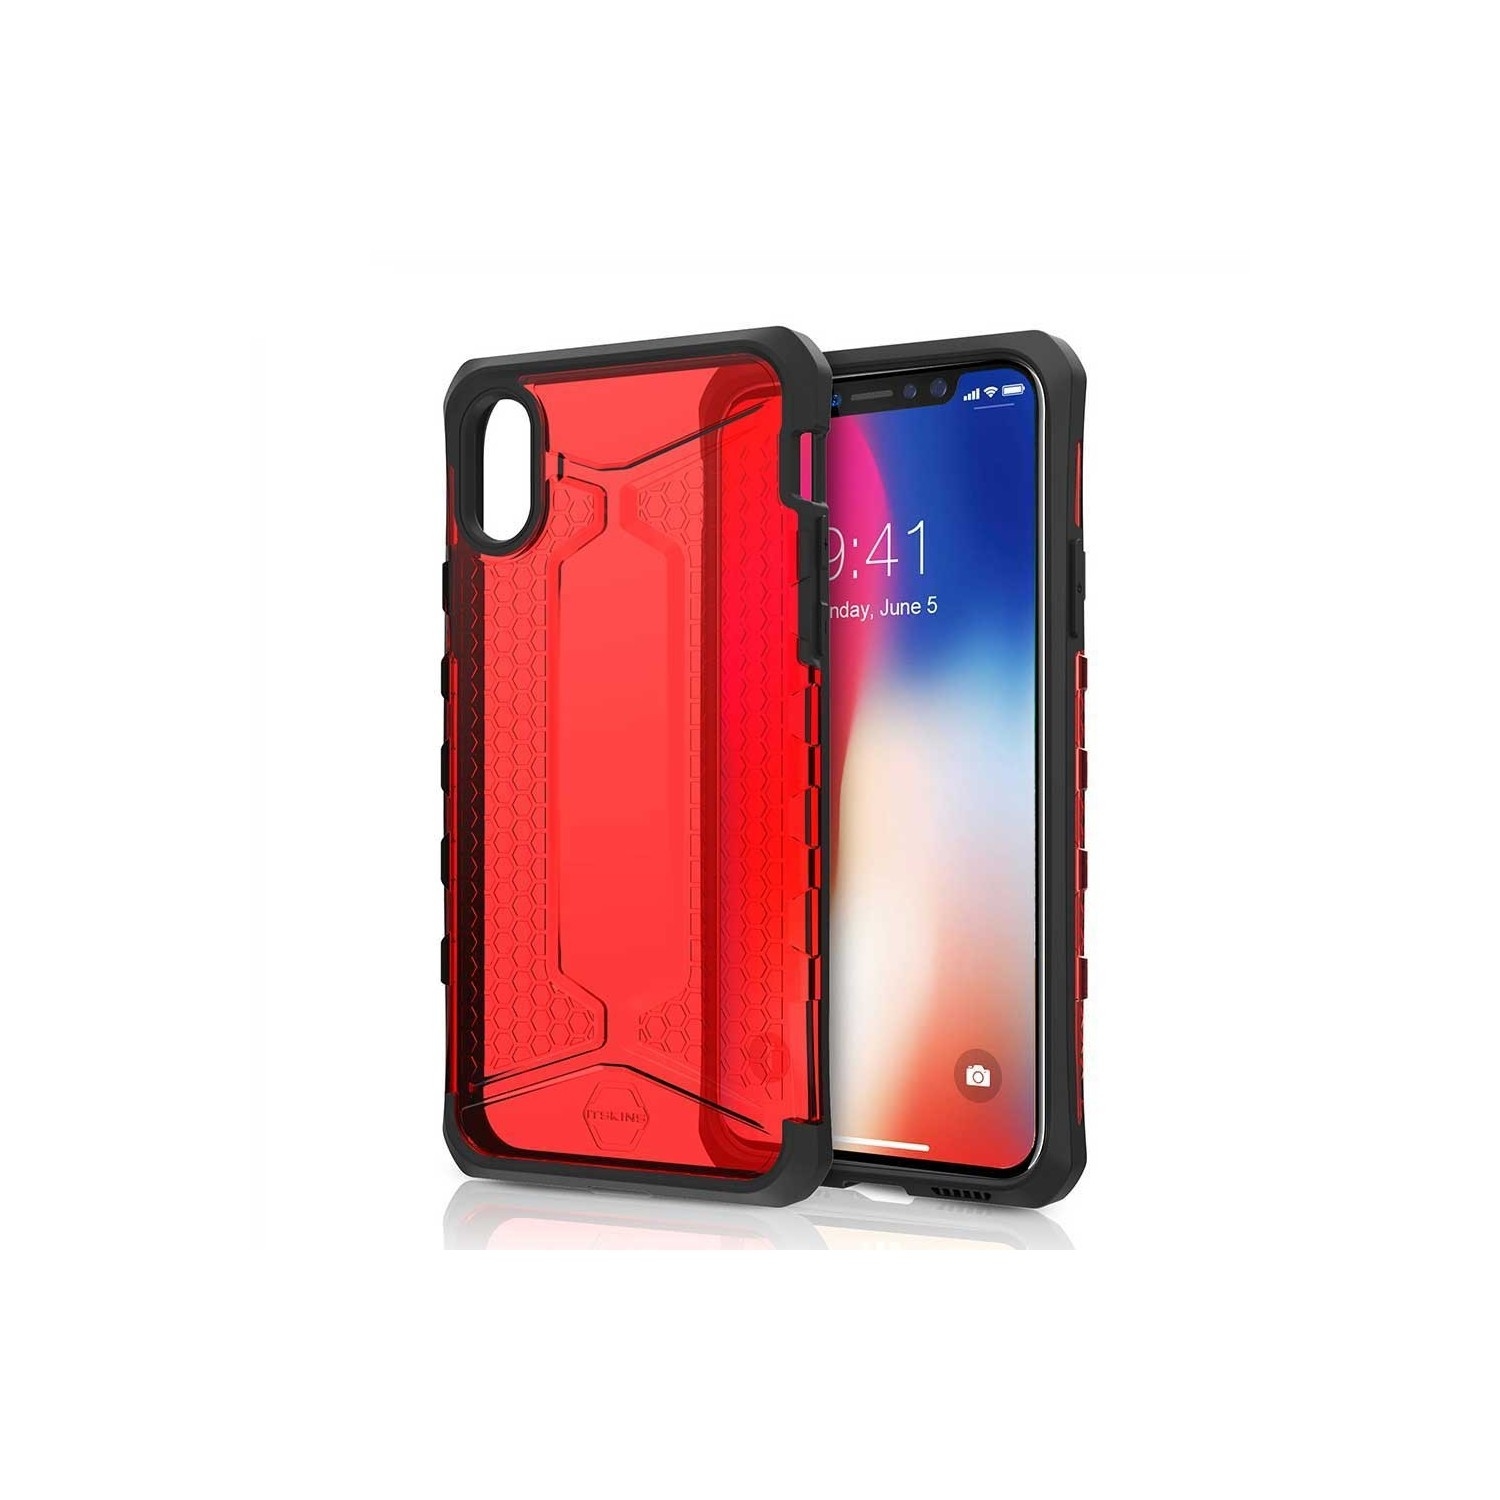 Case - ITSKINS Octane case for iPhone Xs / X - Red